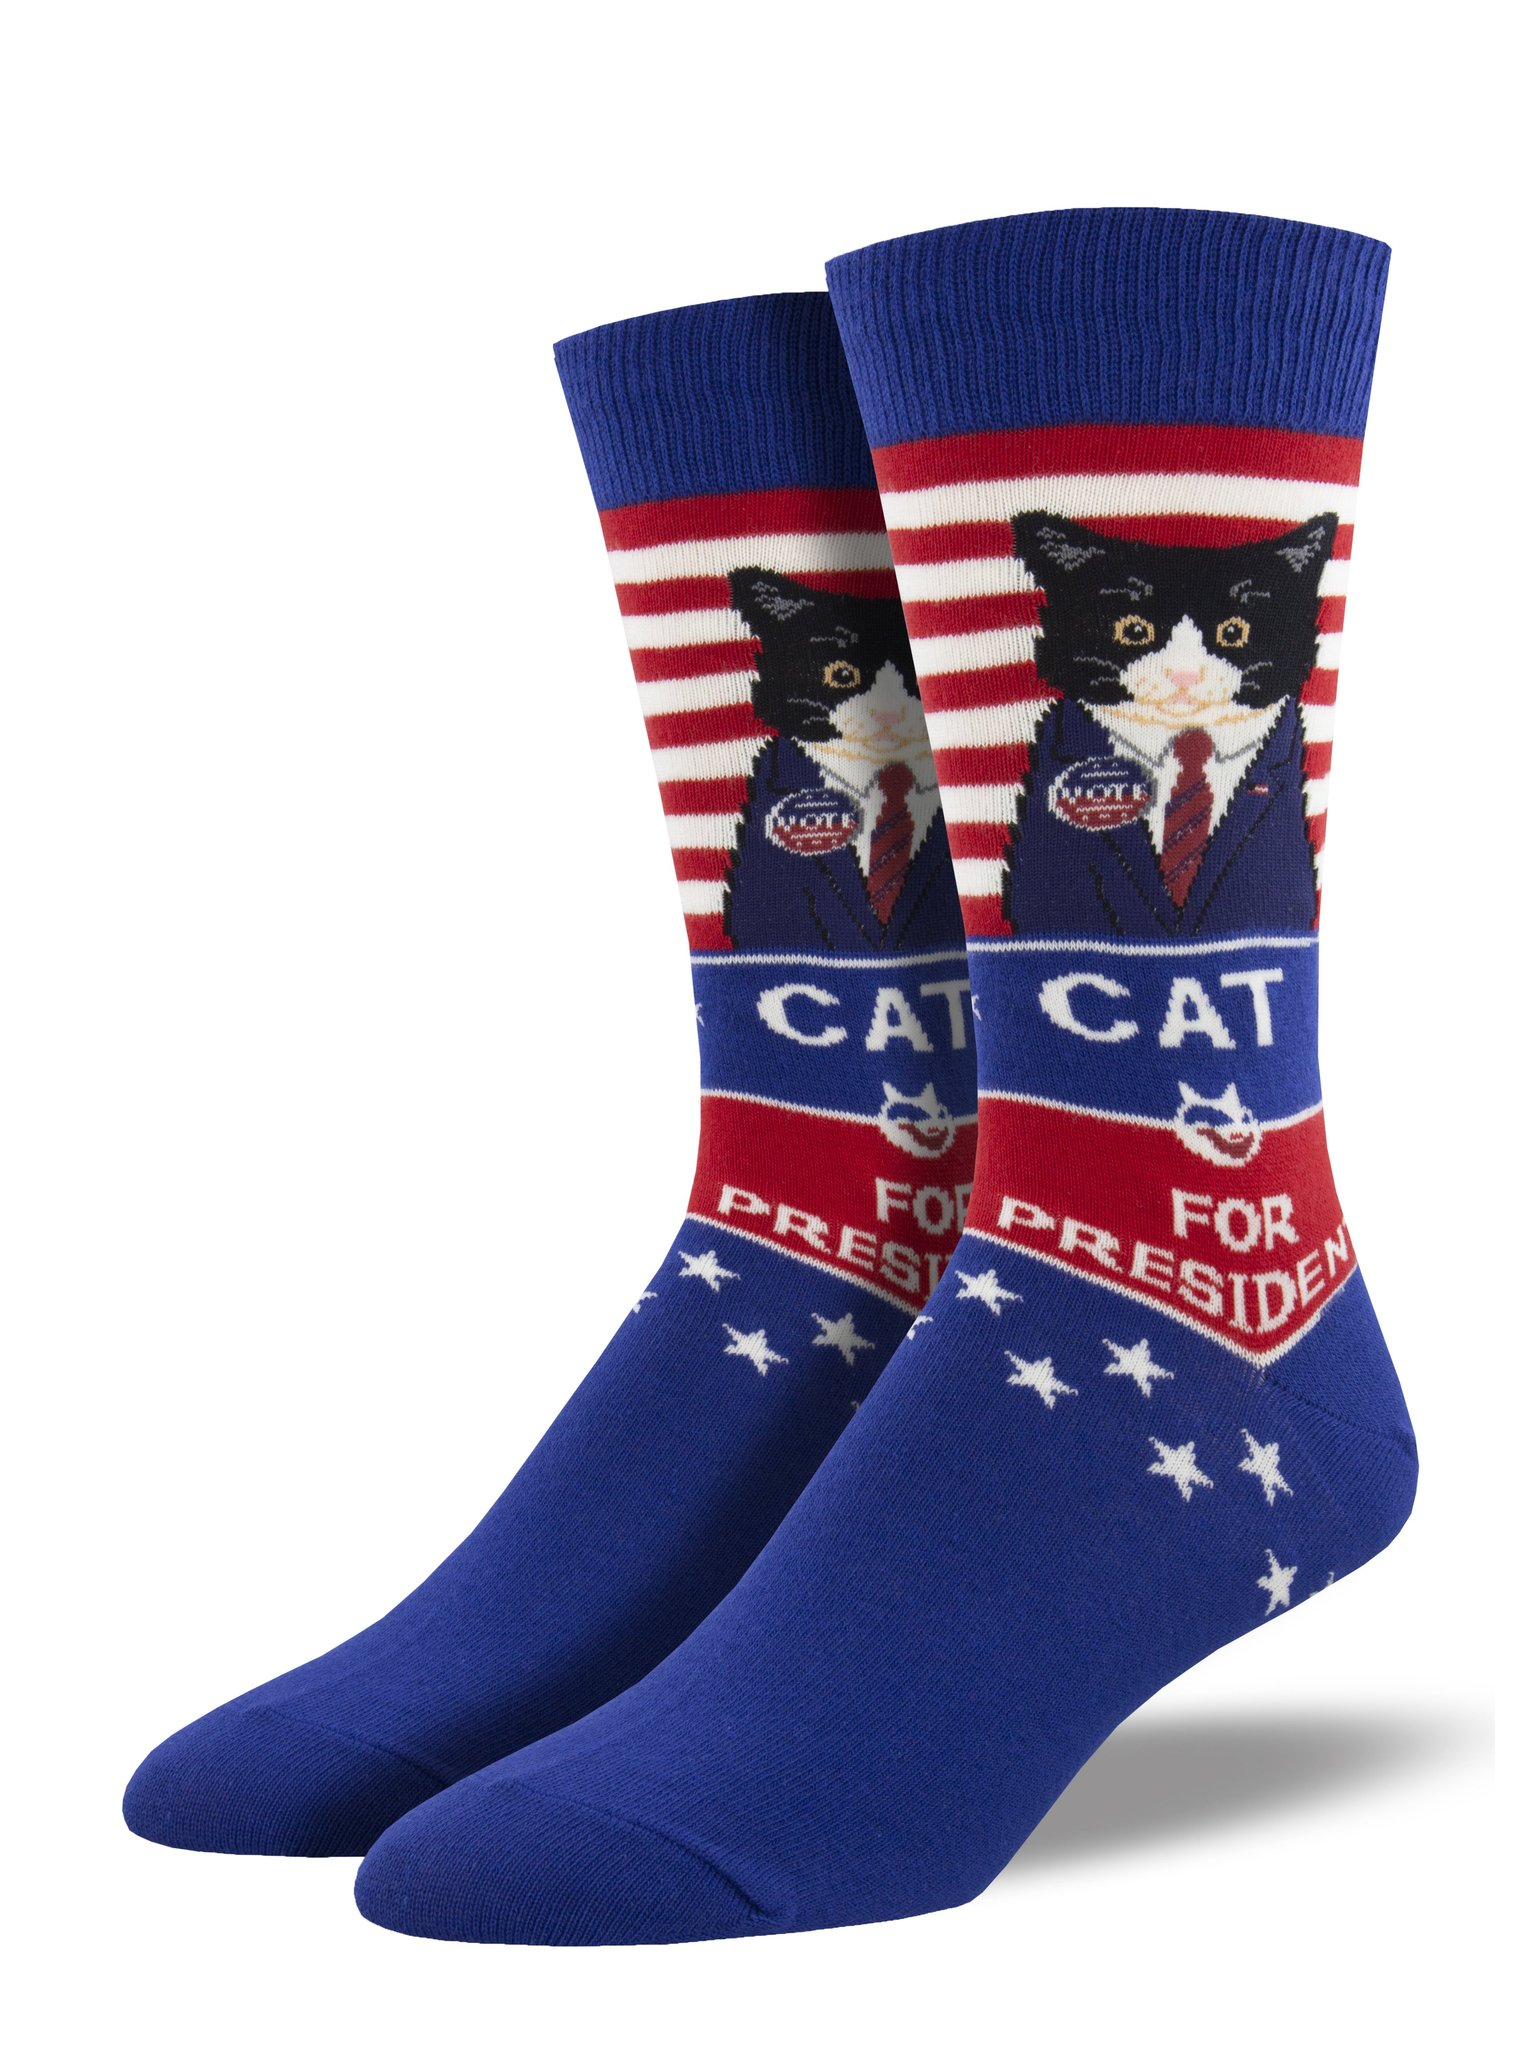 Cat for President Socks, Men's